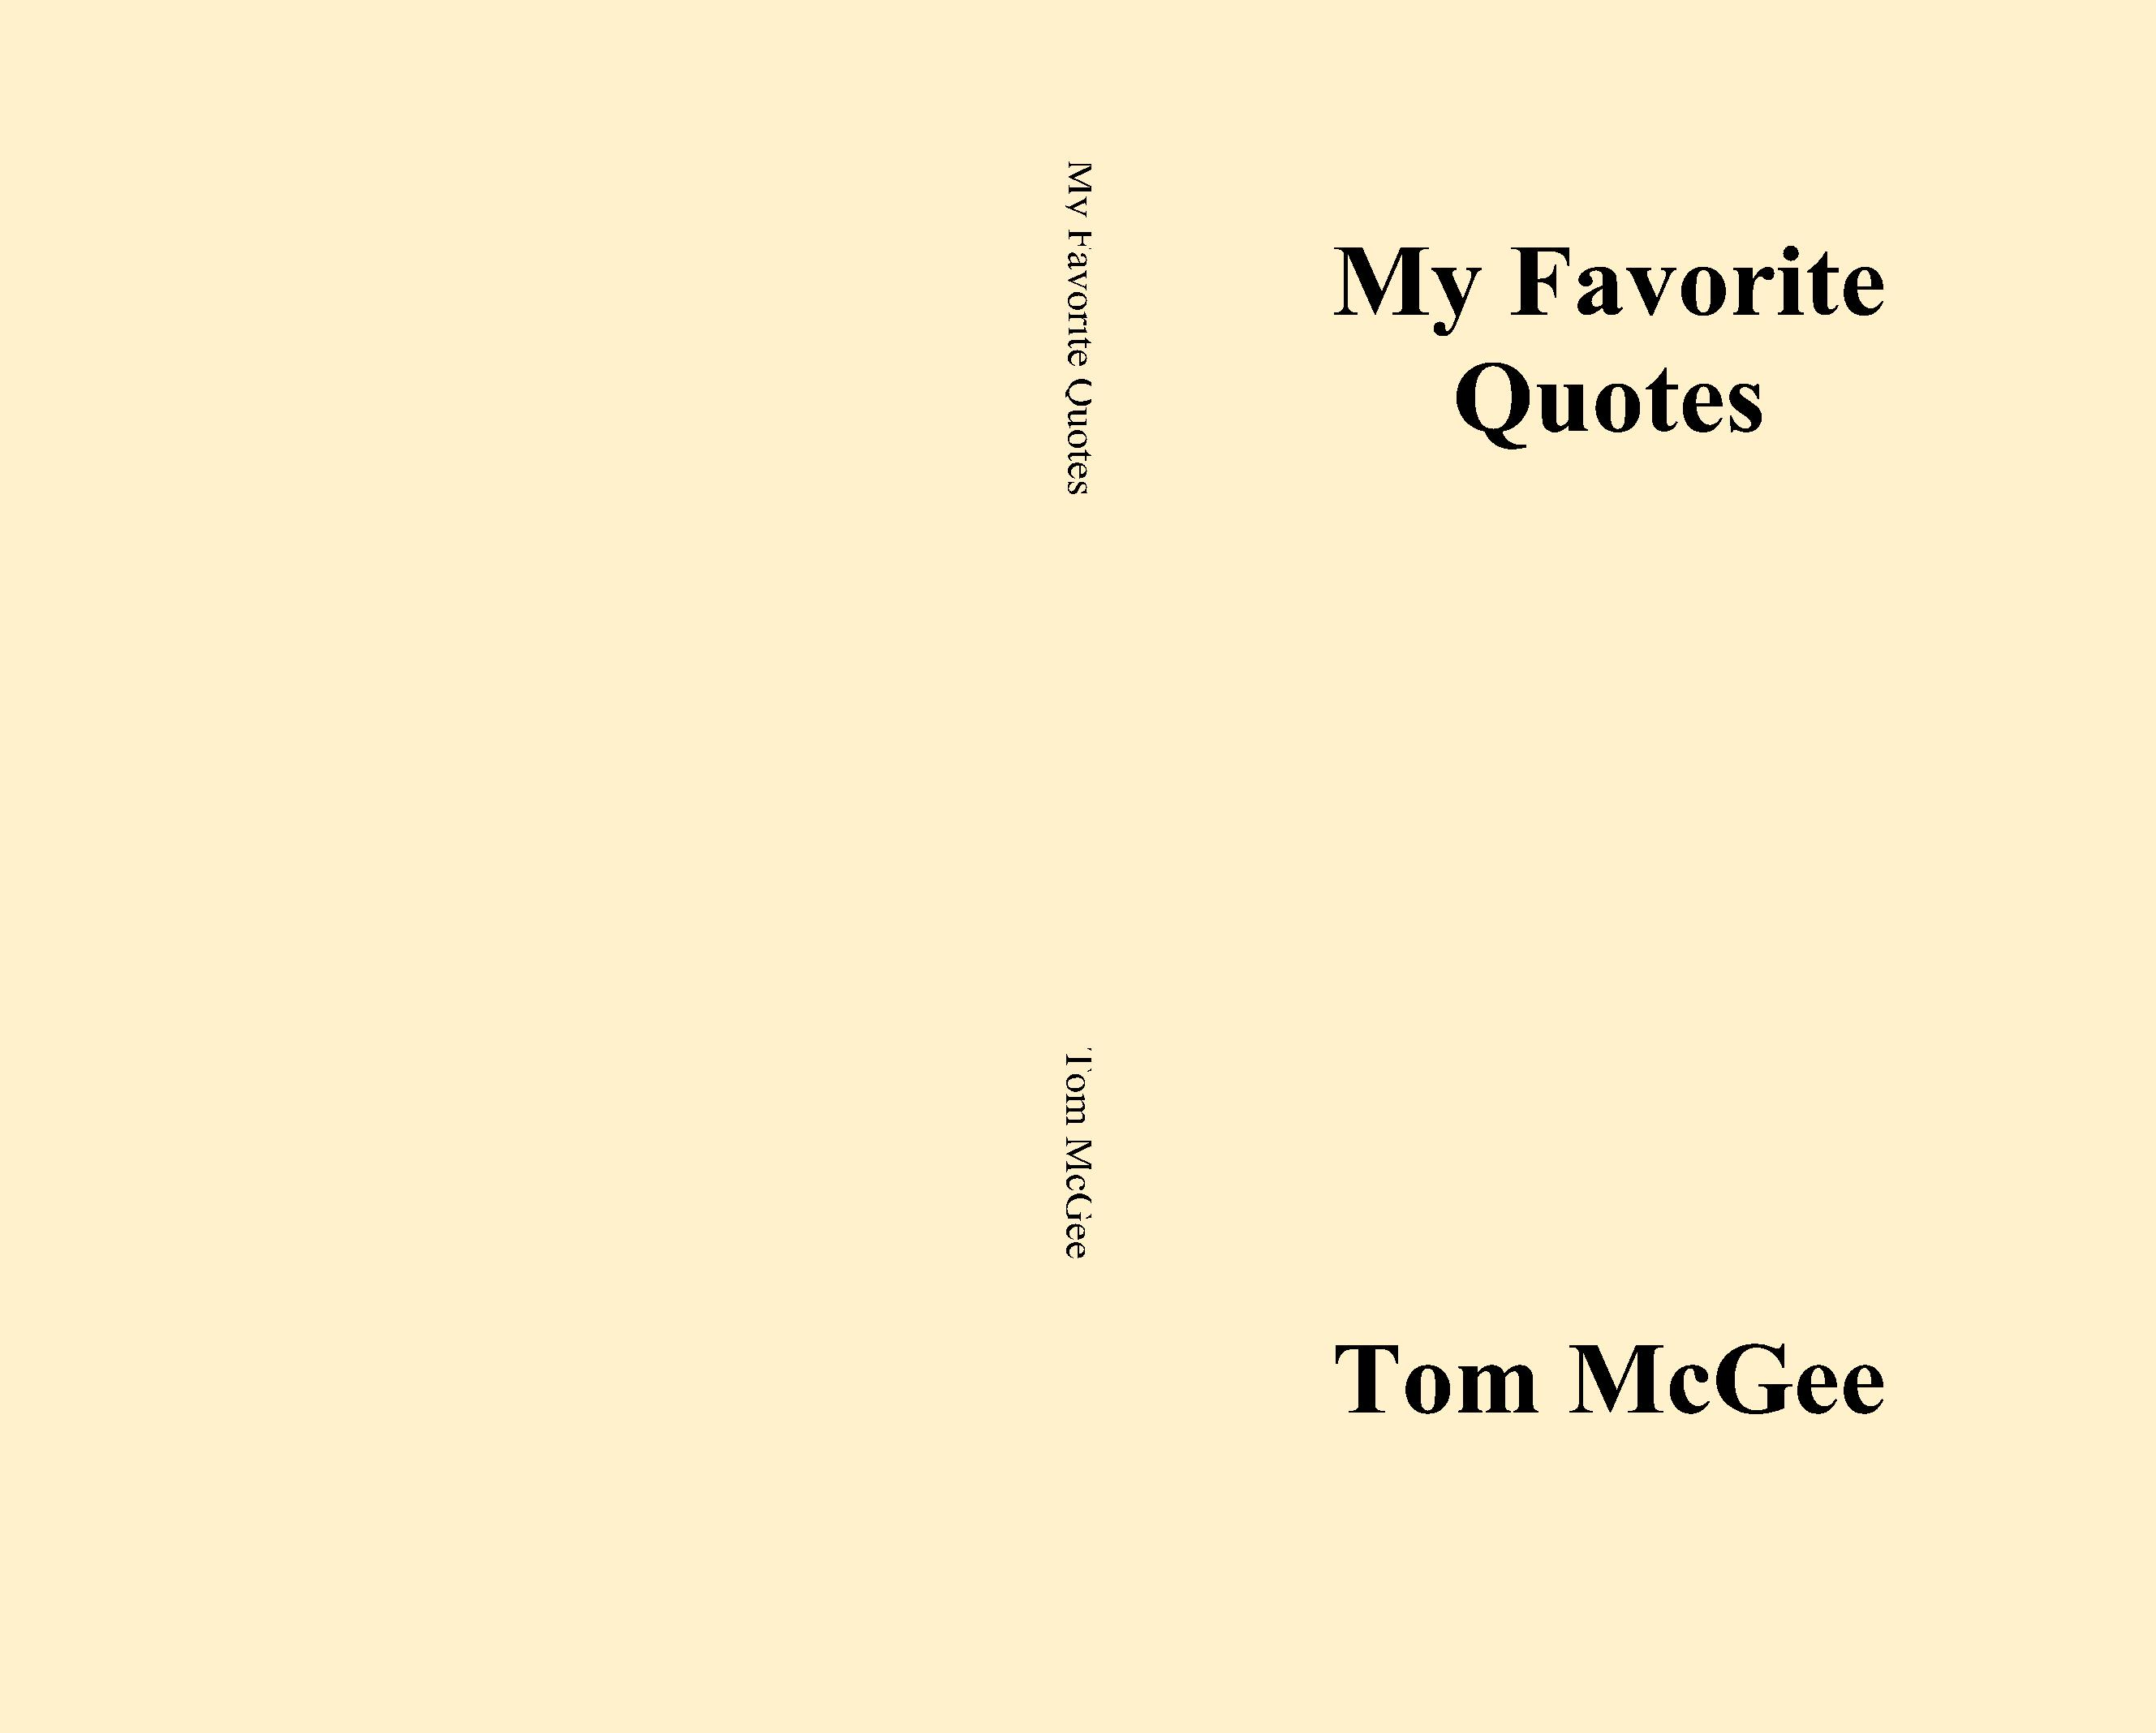 My Favorite Quotes My Favorite Quotestom Mcgee  $12.95  Thebookpatch